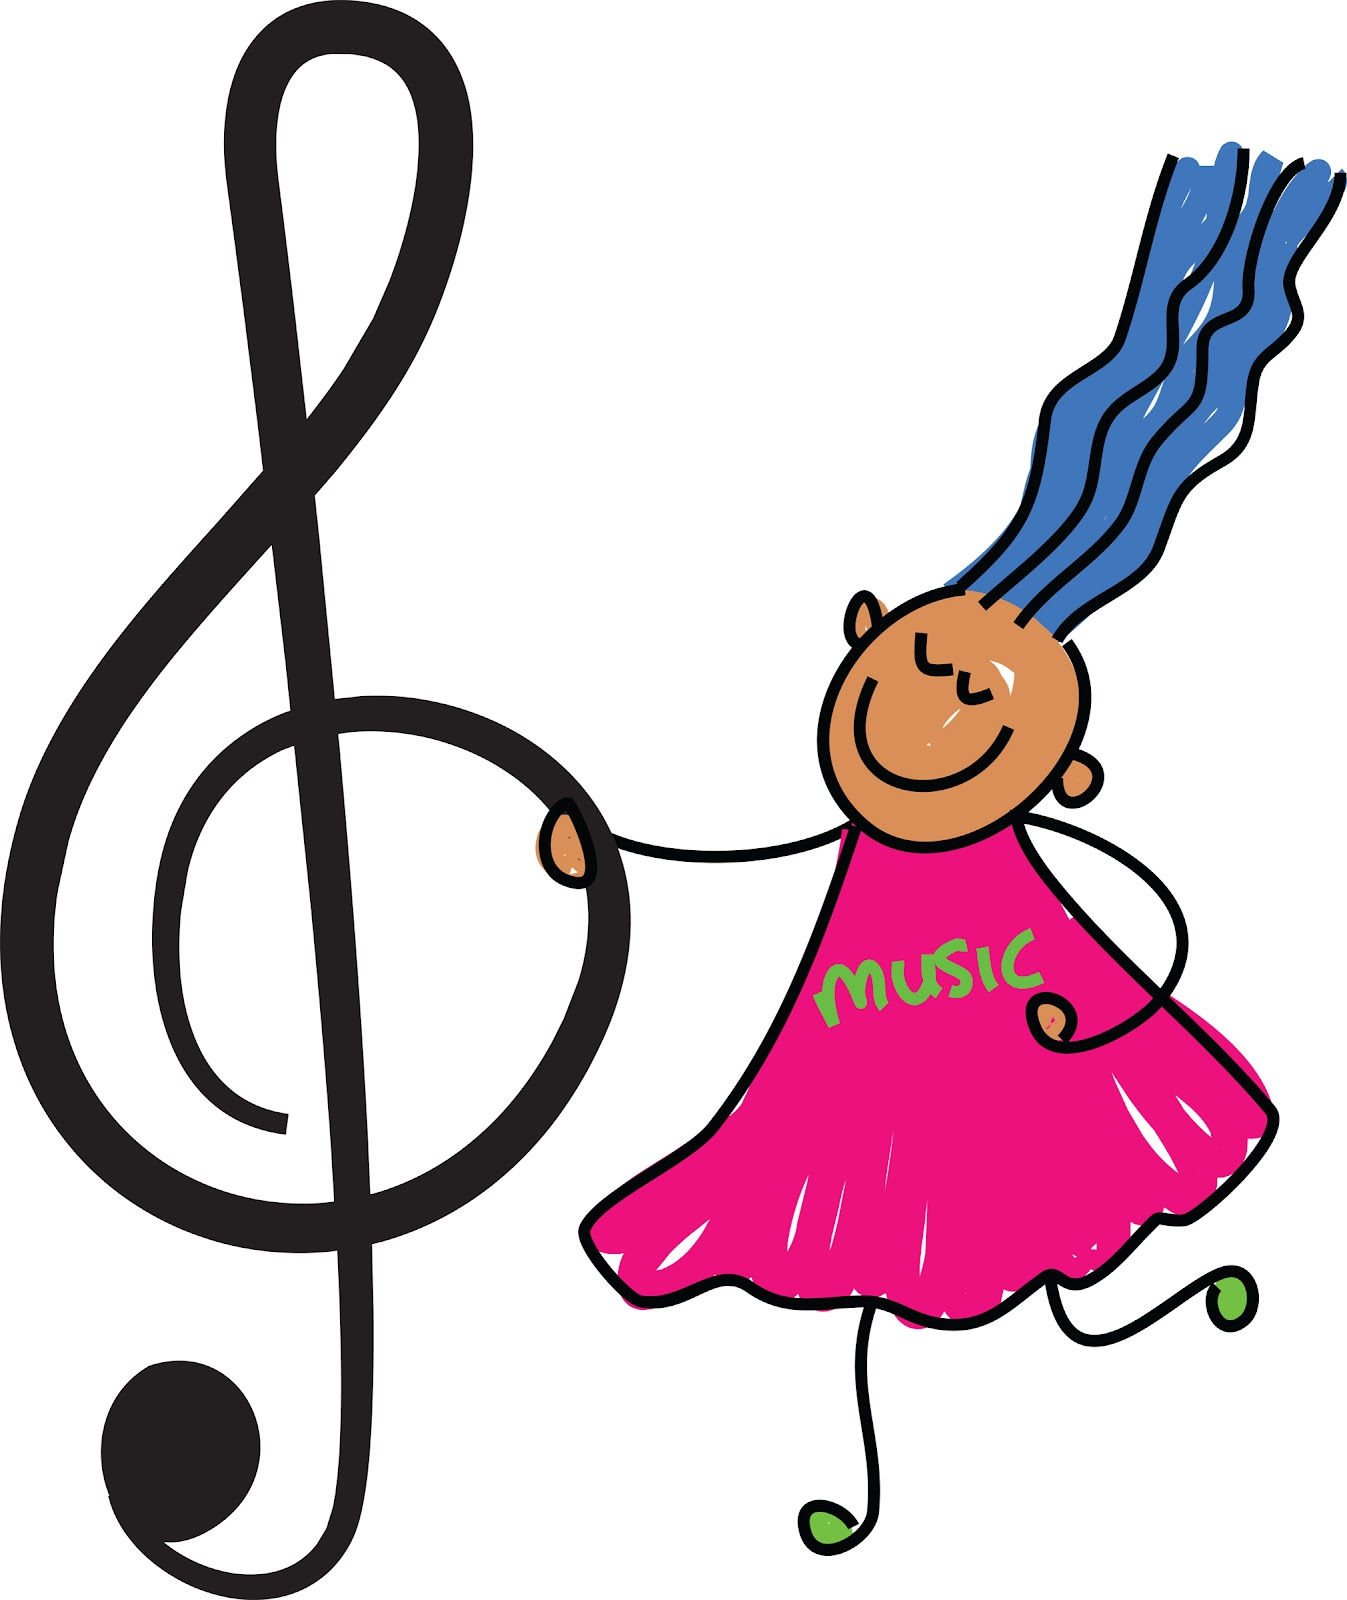 gratis clipart music - photo #20